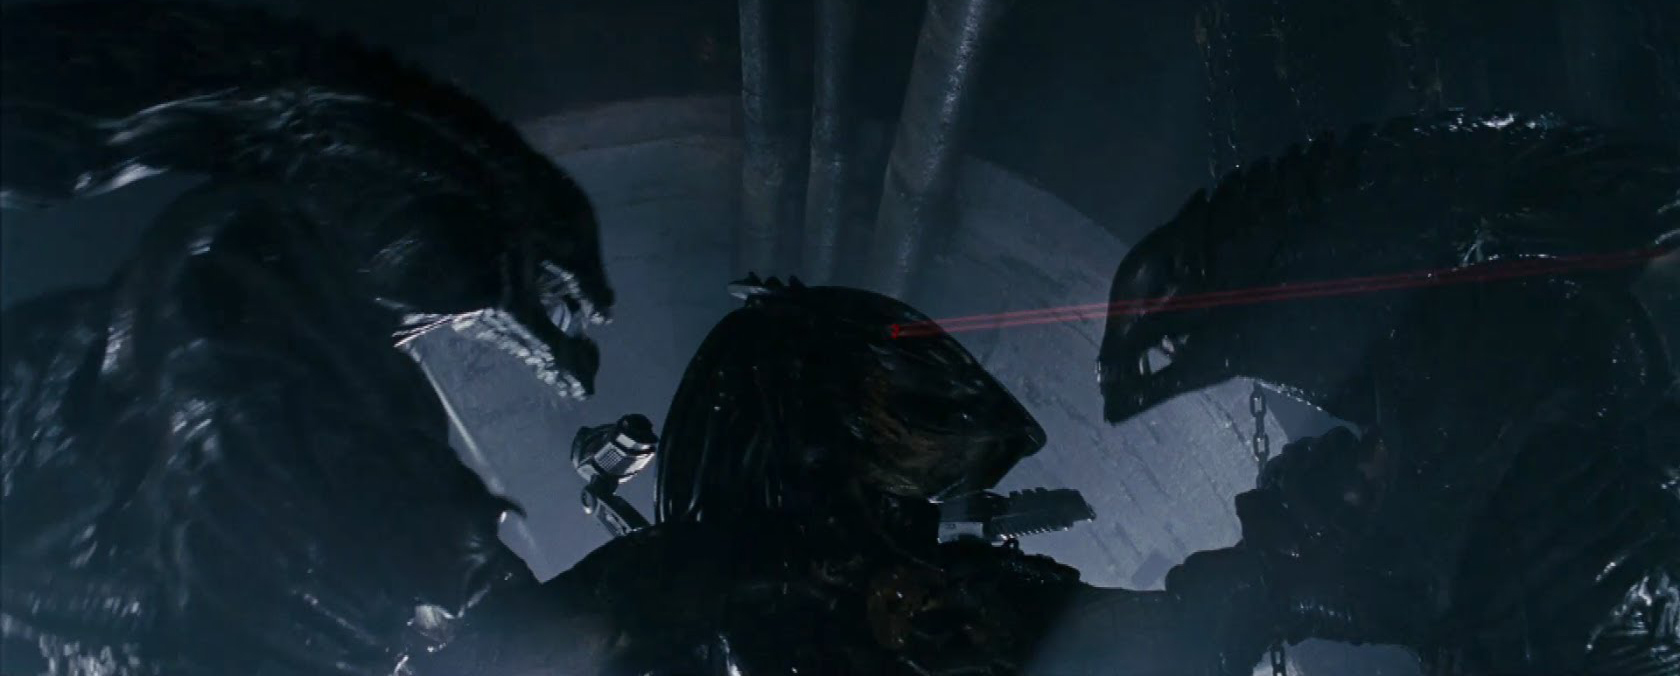 8. Alien vs. Predator: Requiem (2007)